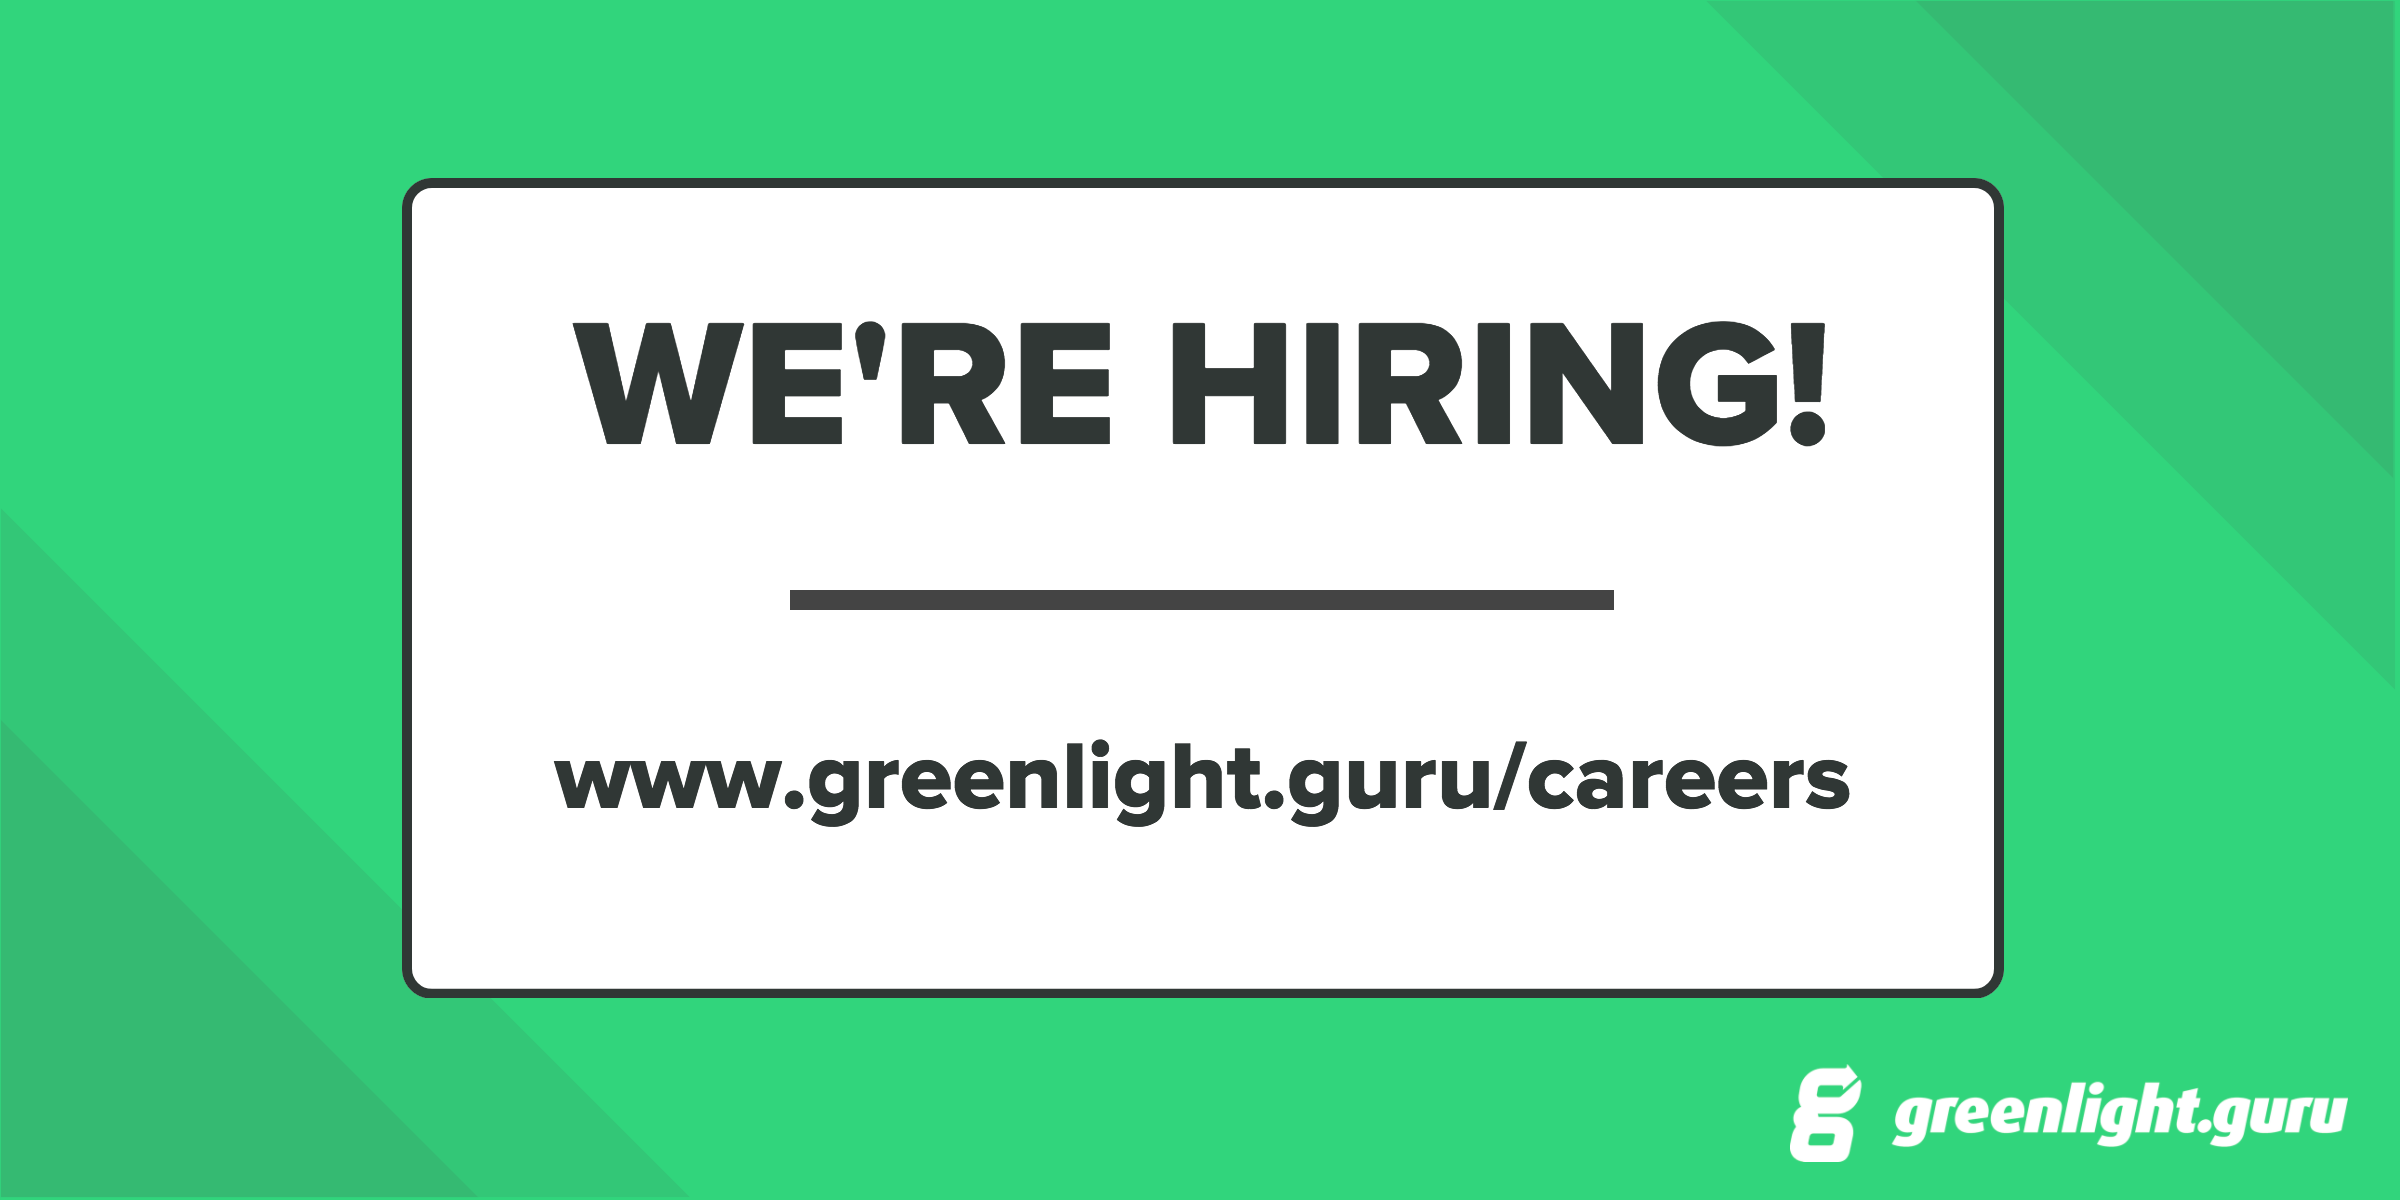 Looking to join a fun, fast growing SaaS company? Greenlight Guru is hiring in all areas (Again)! - Featured Image